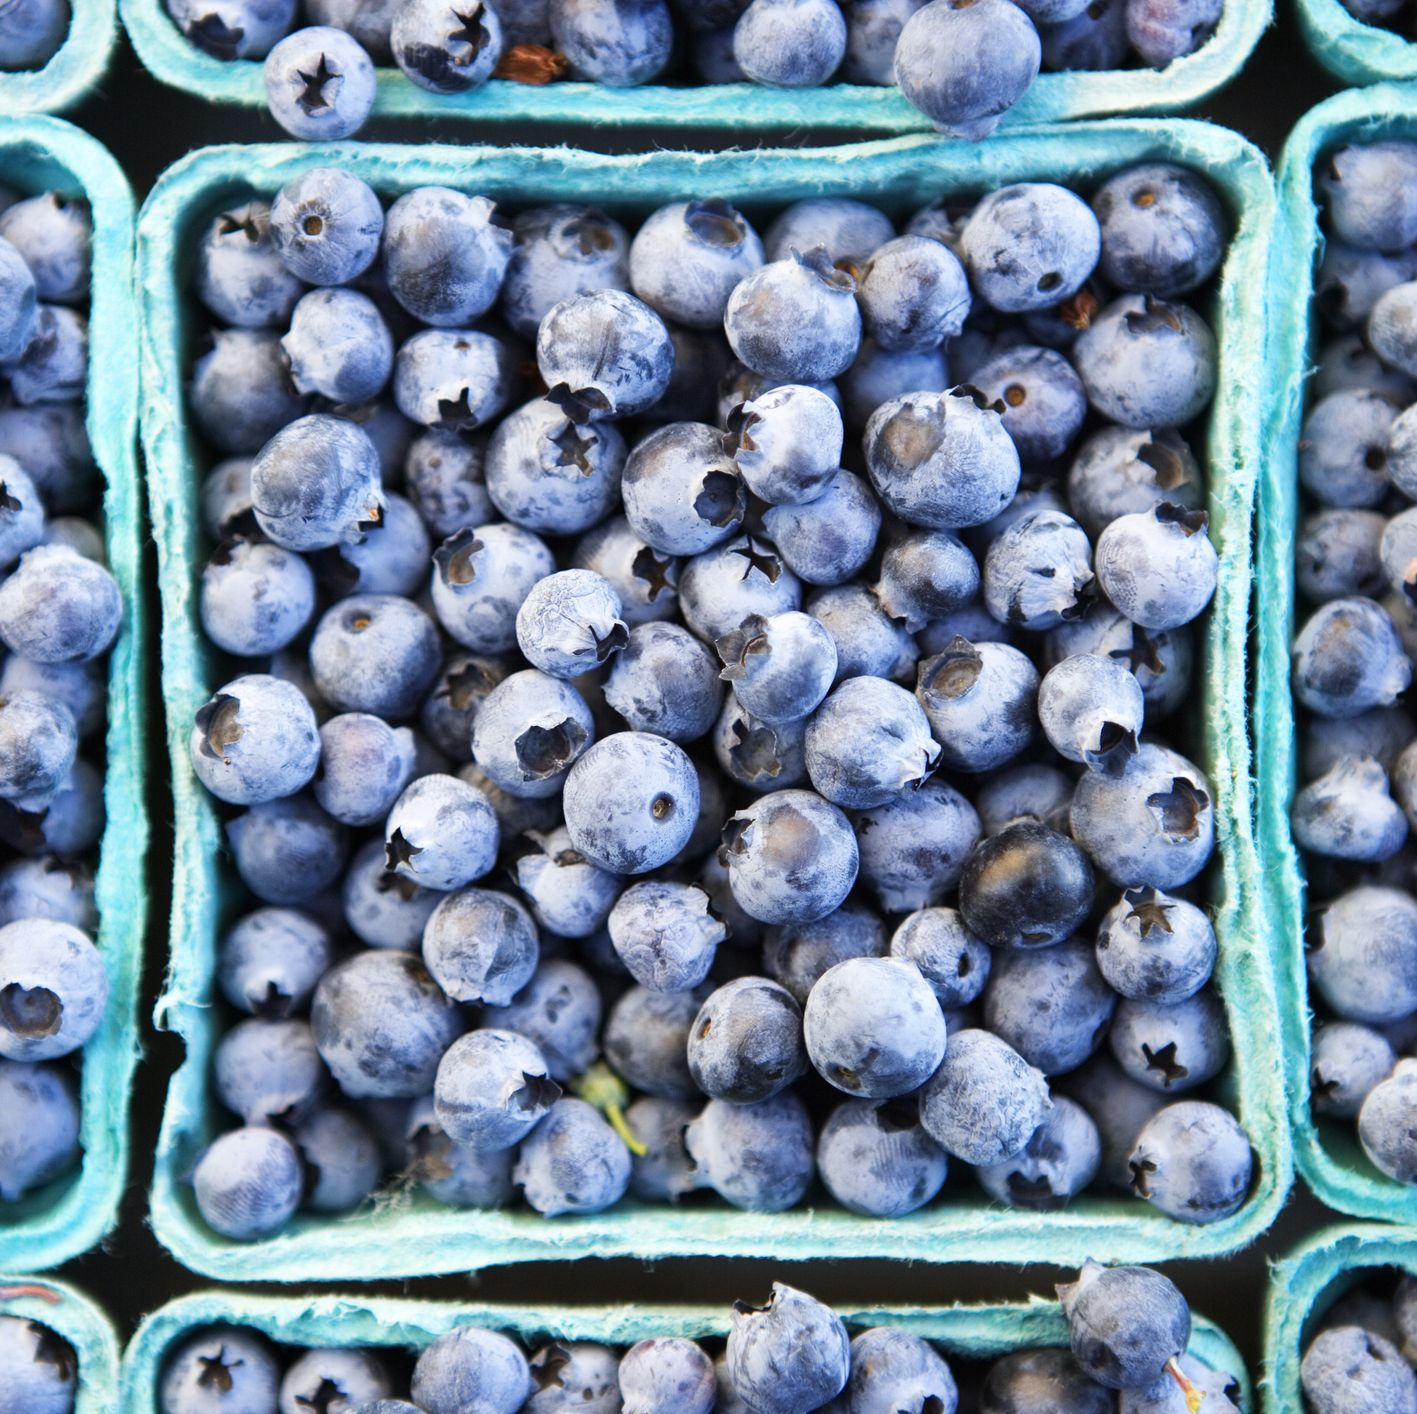 6 Unexpected Benefits of Blueberries You Probably Didn't Know About